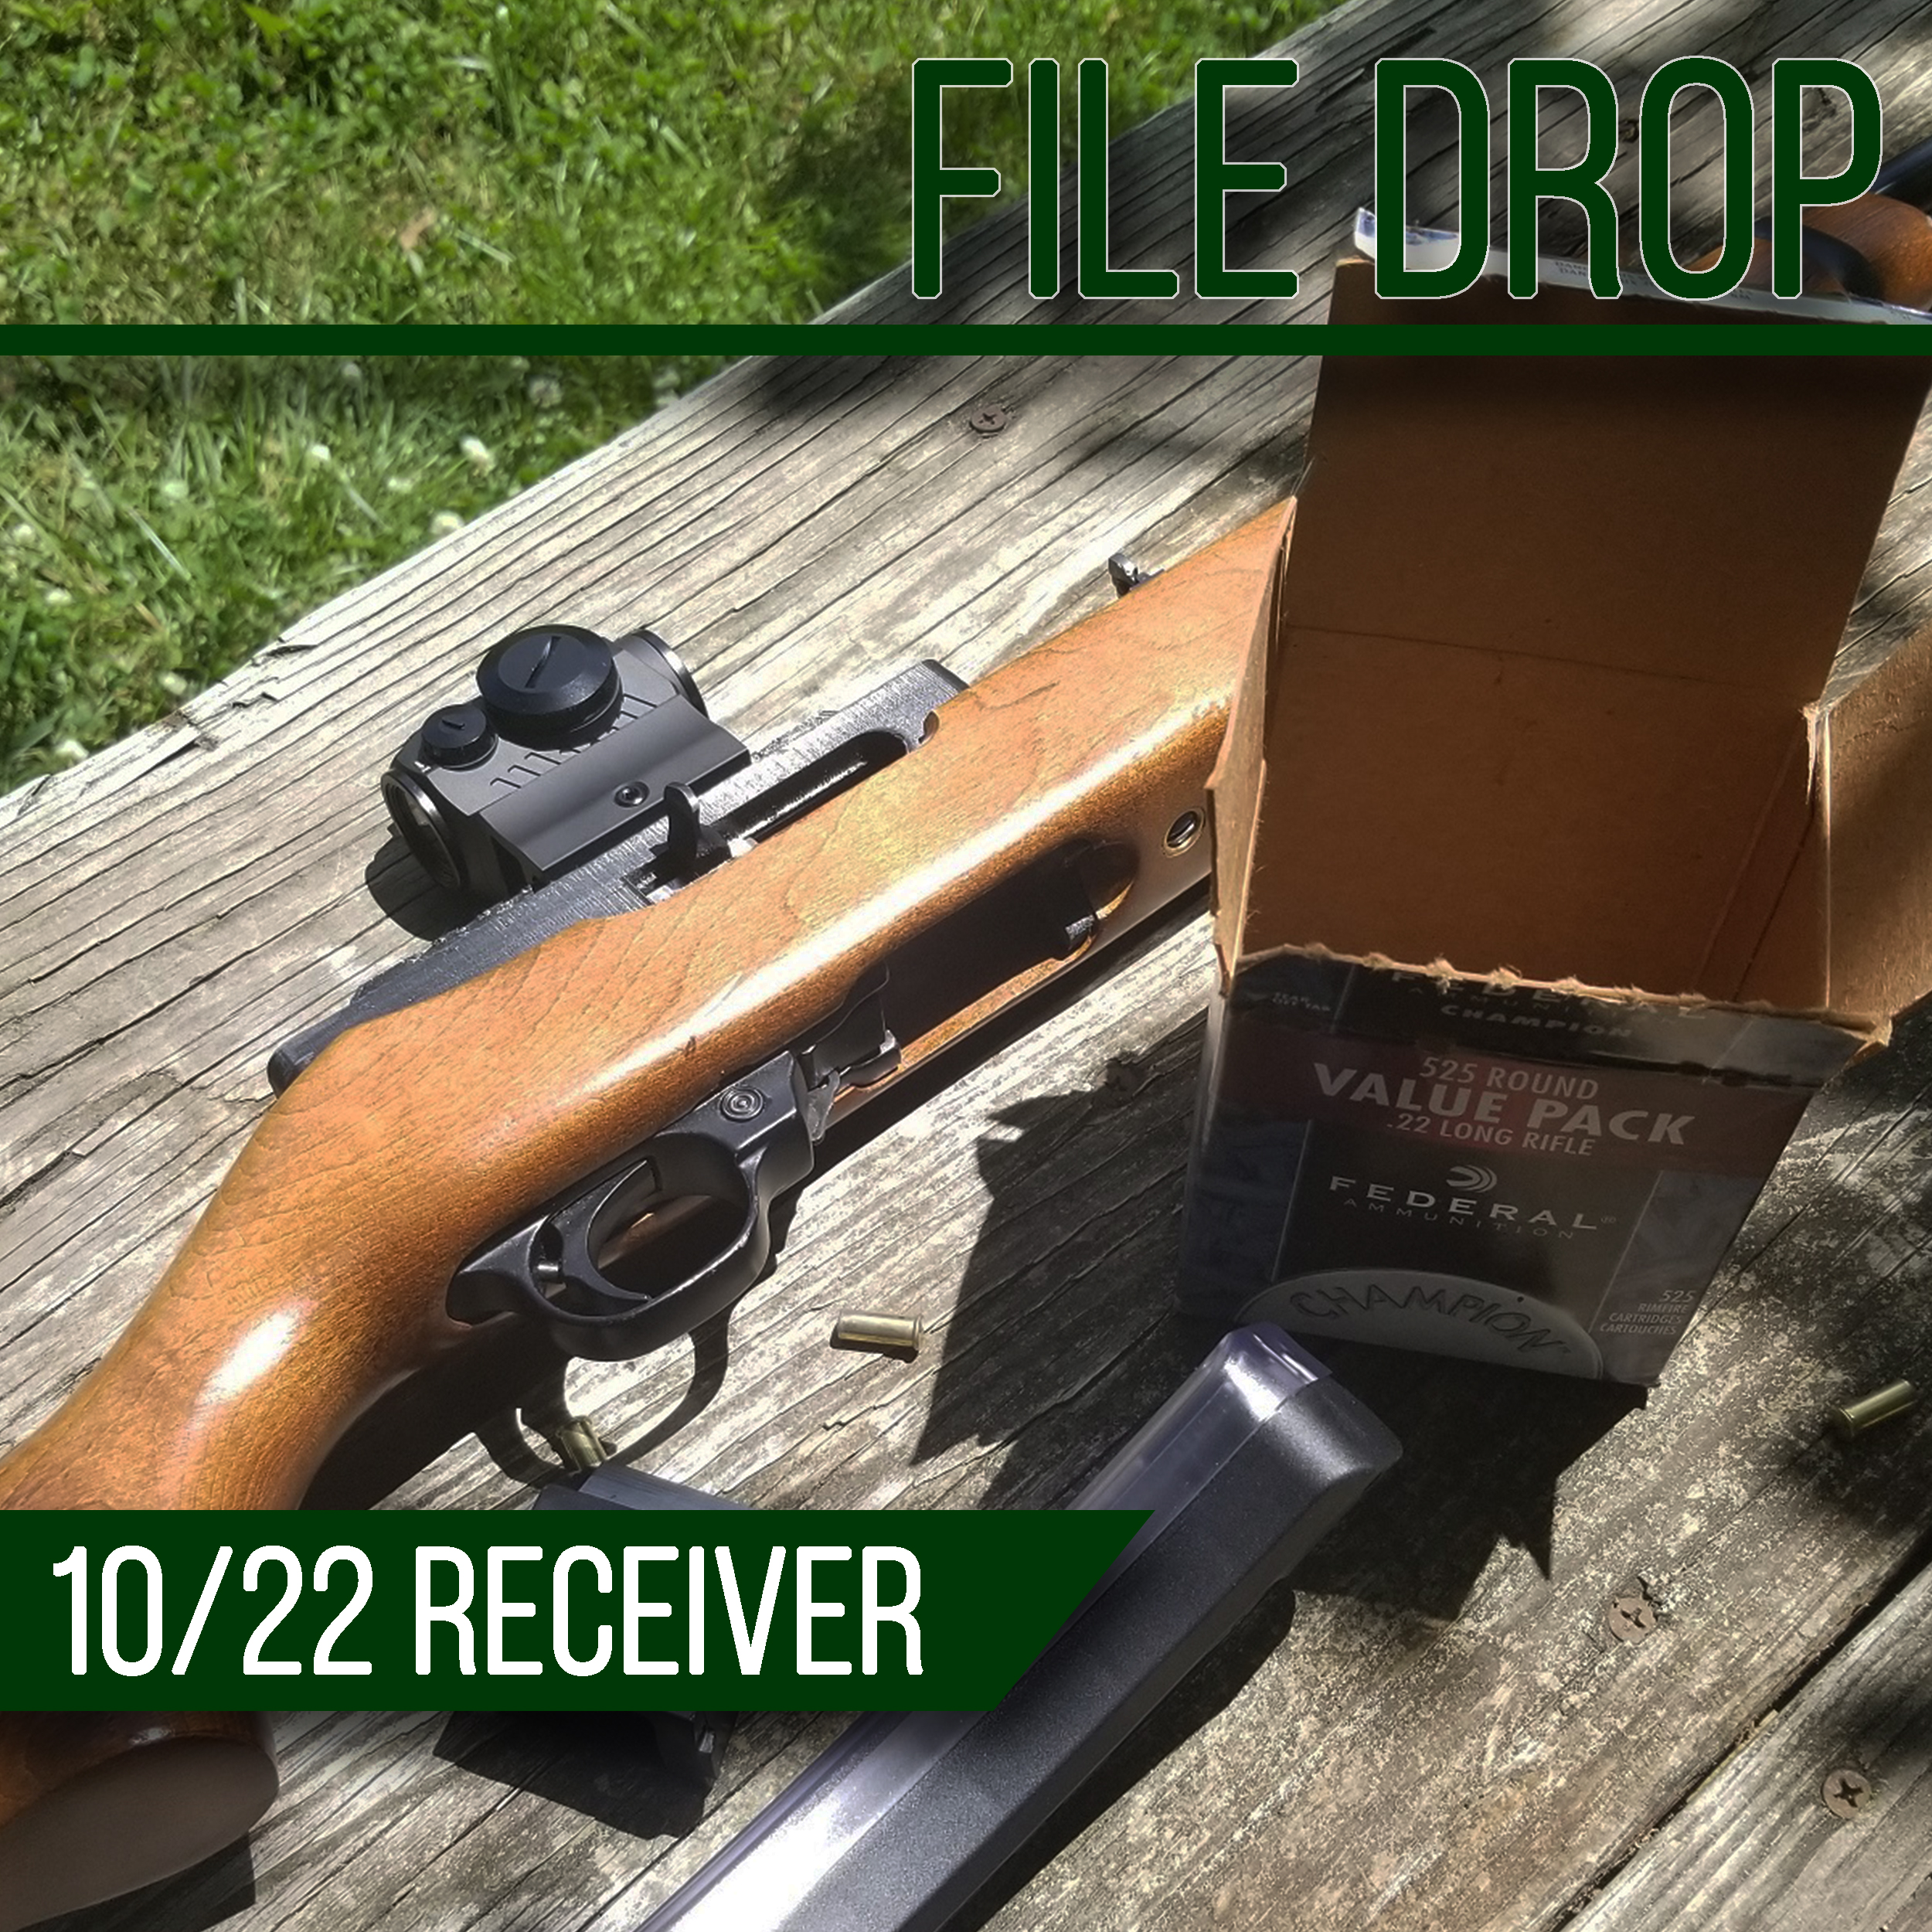 File Drop: 10/22 Printable Receiver